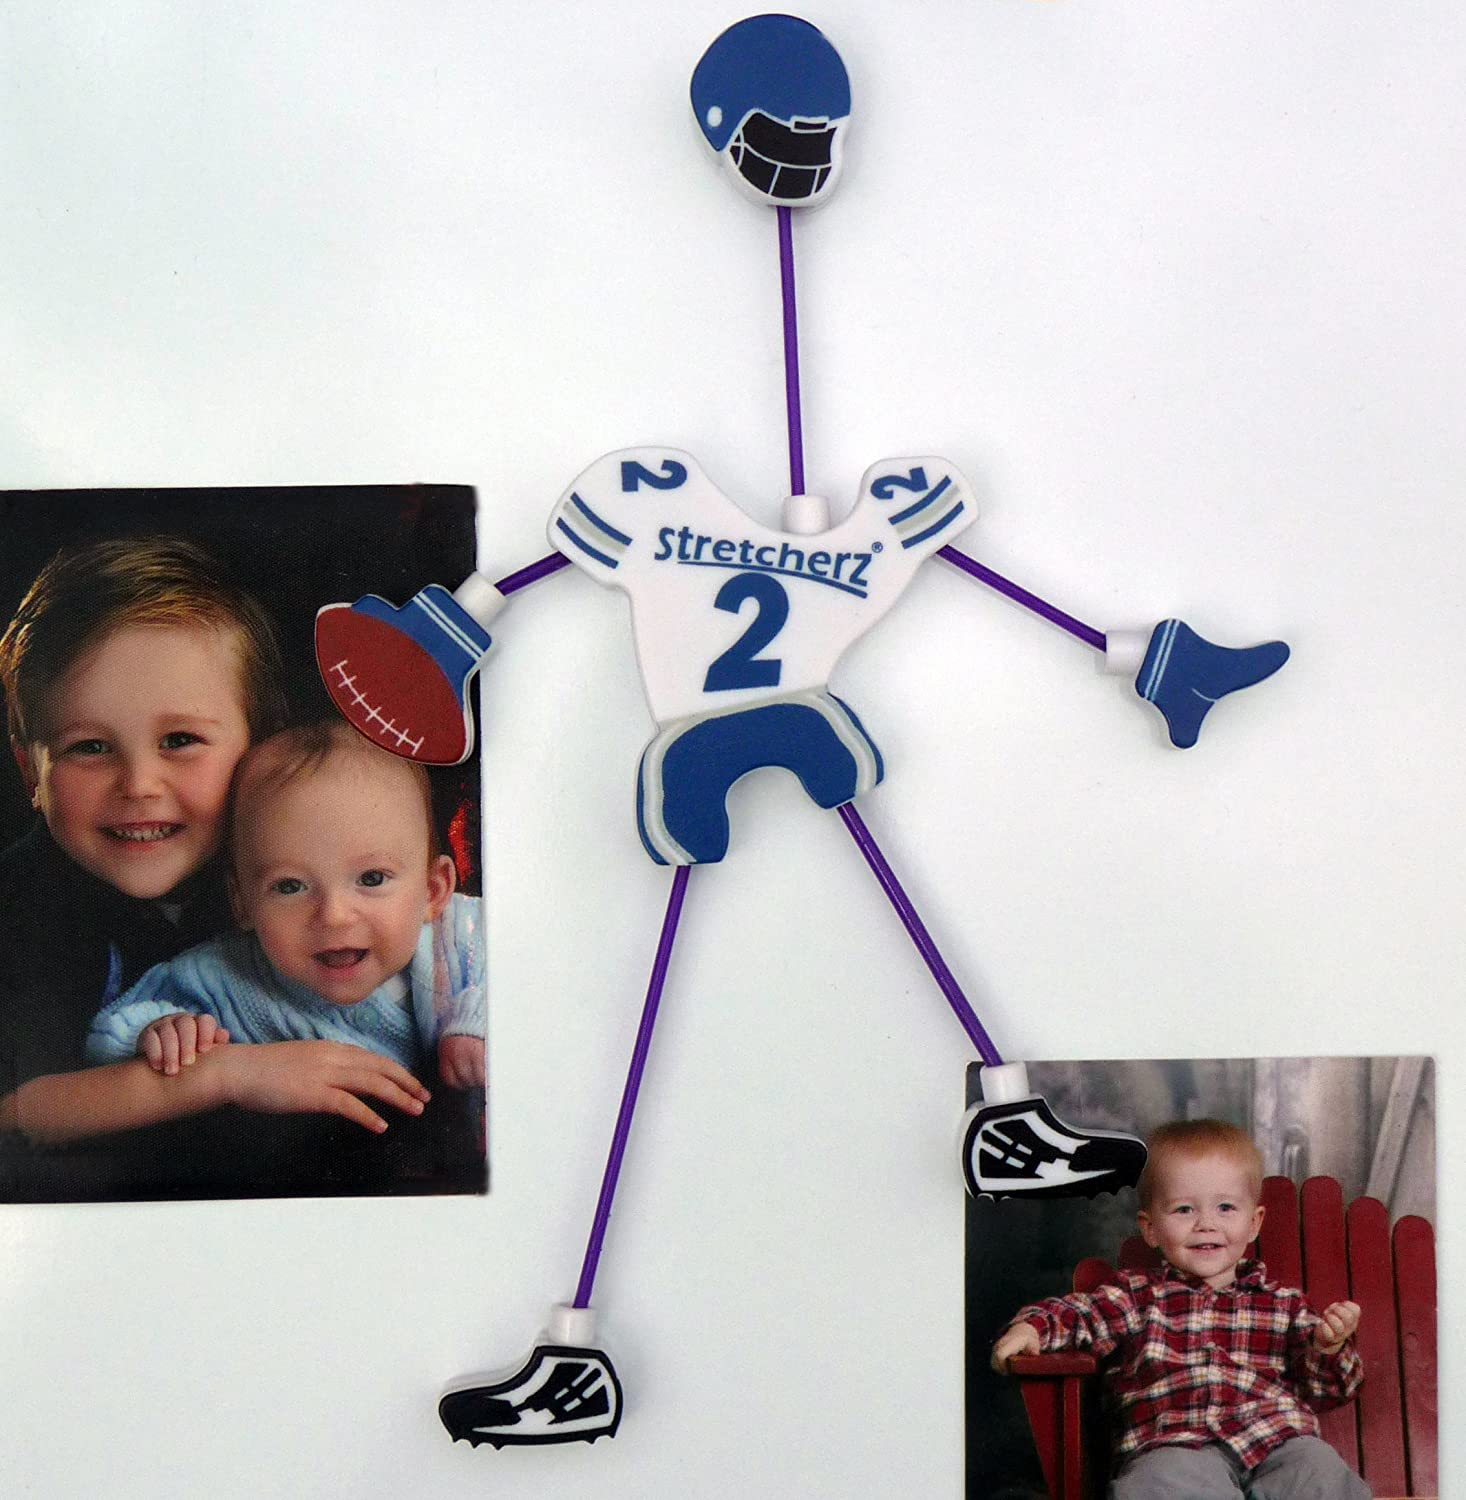 Boing Max 55% OFF shop Designs Football Magnetic Character #2 Sports